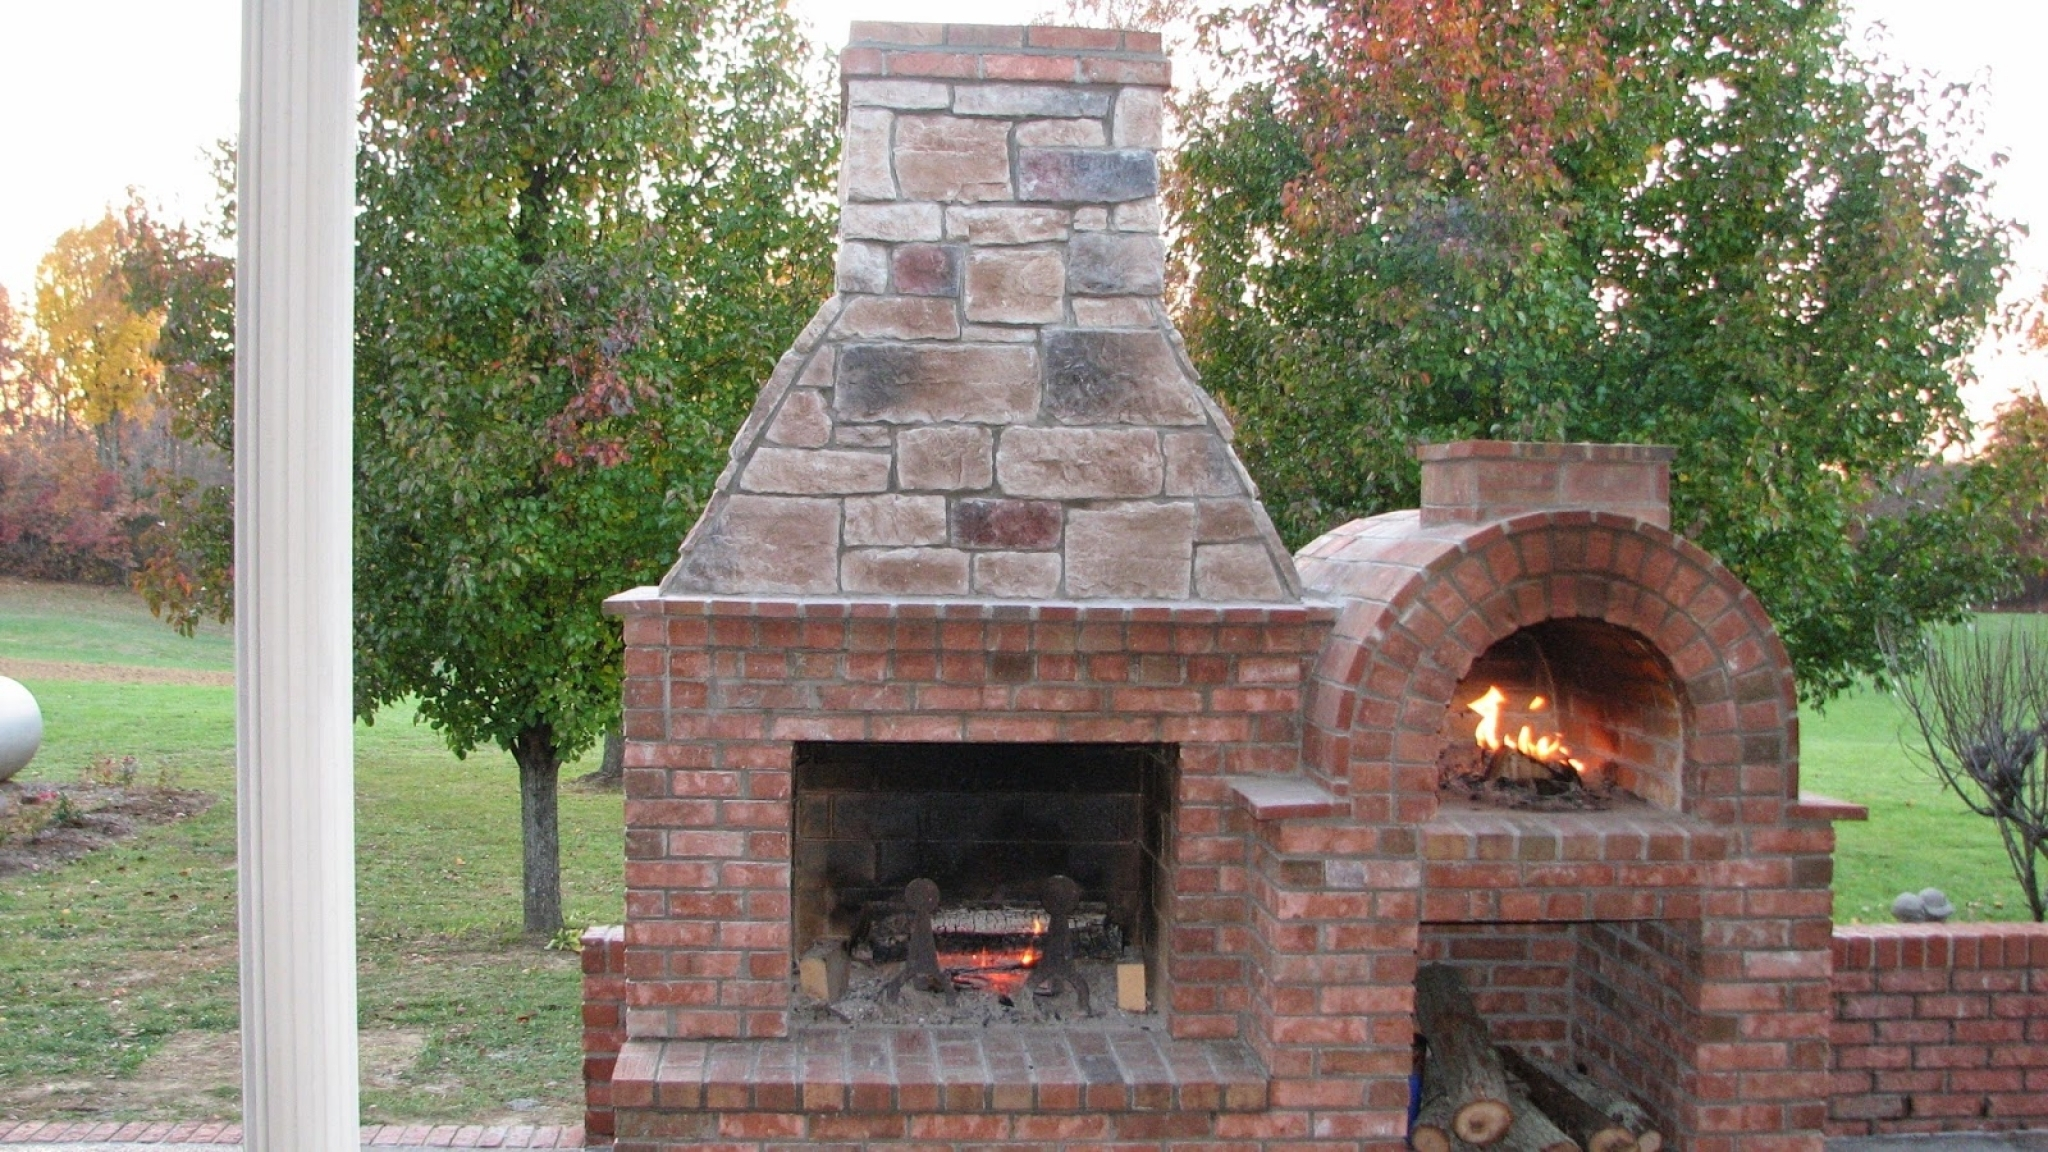 Image of: Simple Outdoor Fireplace Pizza Oven Plans Home Design Planning With Outdoor Wood Fireplace Design Outdoor Wood Fireplace Designs